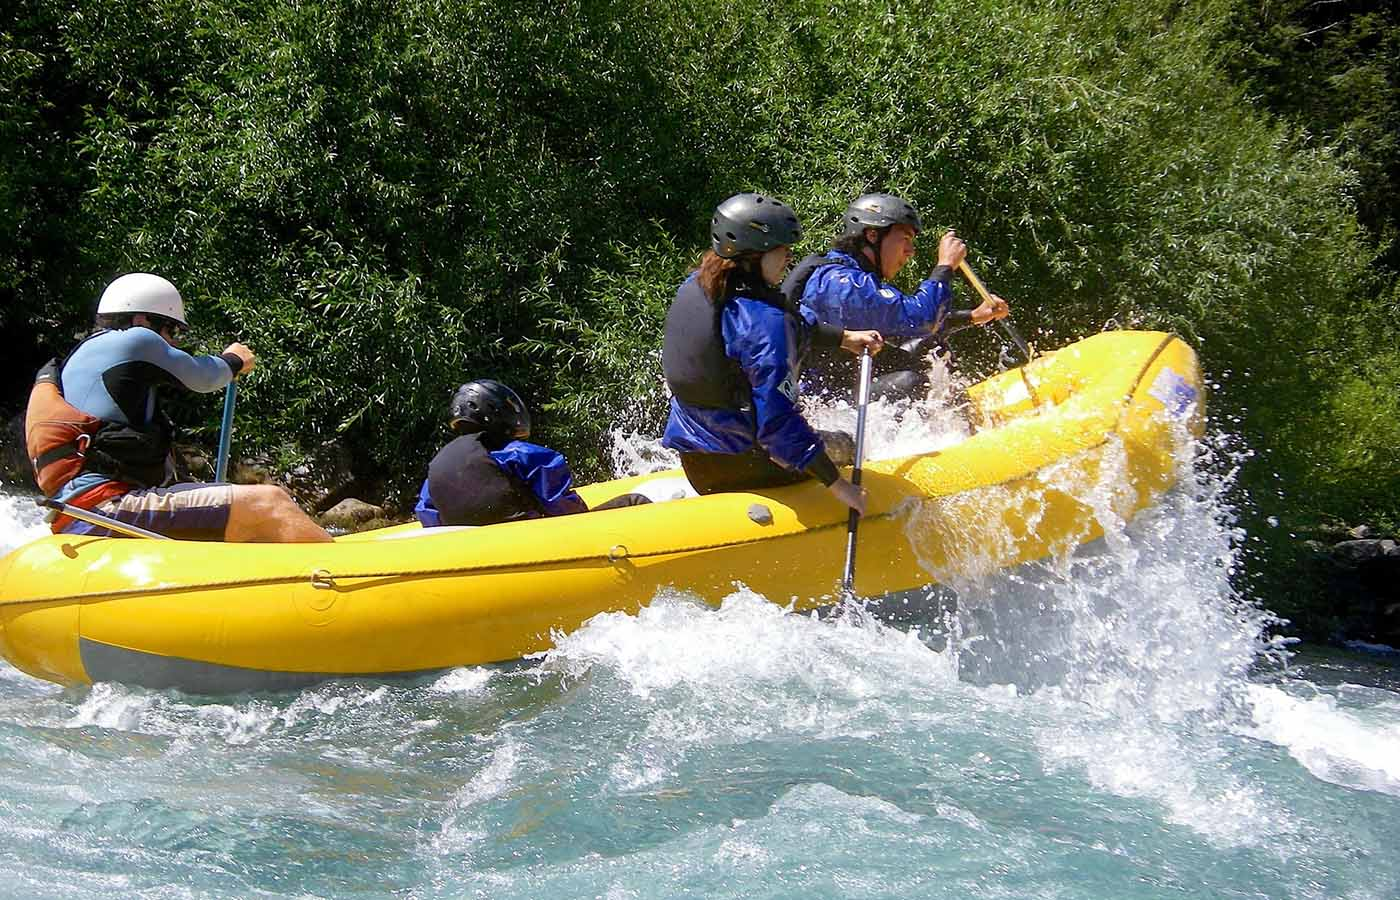 Paute - If you are more of a beginner to white-water rafting, then this is the tour for you. This tour takes place in the Ecuadorian Austro and allows rafters to admire and enjoy the diverse landscapes of the mountains, forests, and agriculture. This is one of the safest and quietest runs of this sport in Ecuador. Recommended time: all year. Degree of difficulty: Low – Medium.